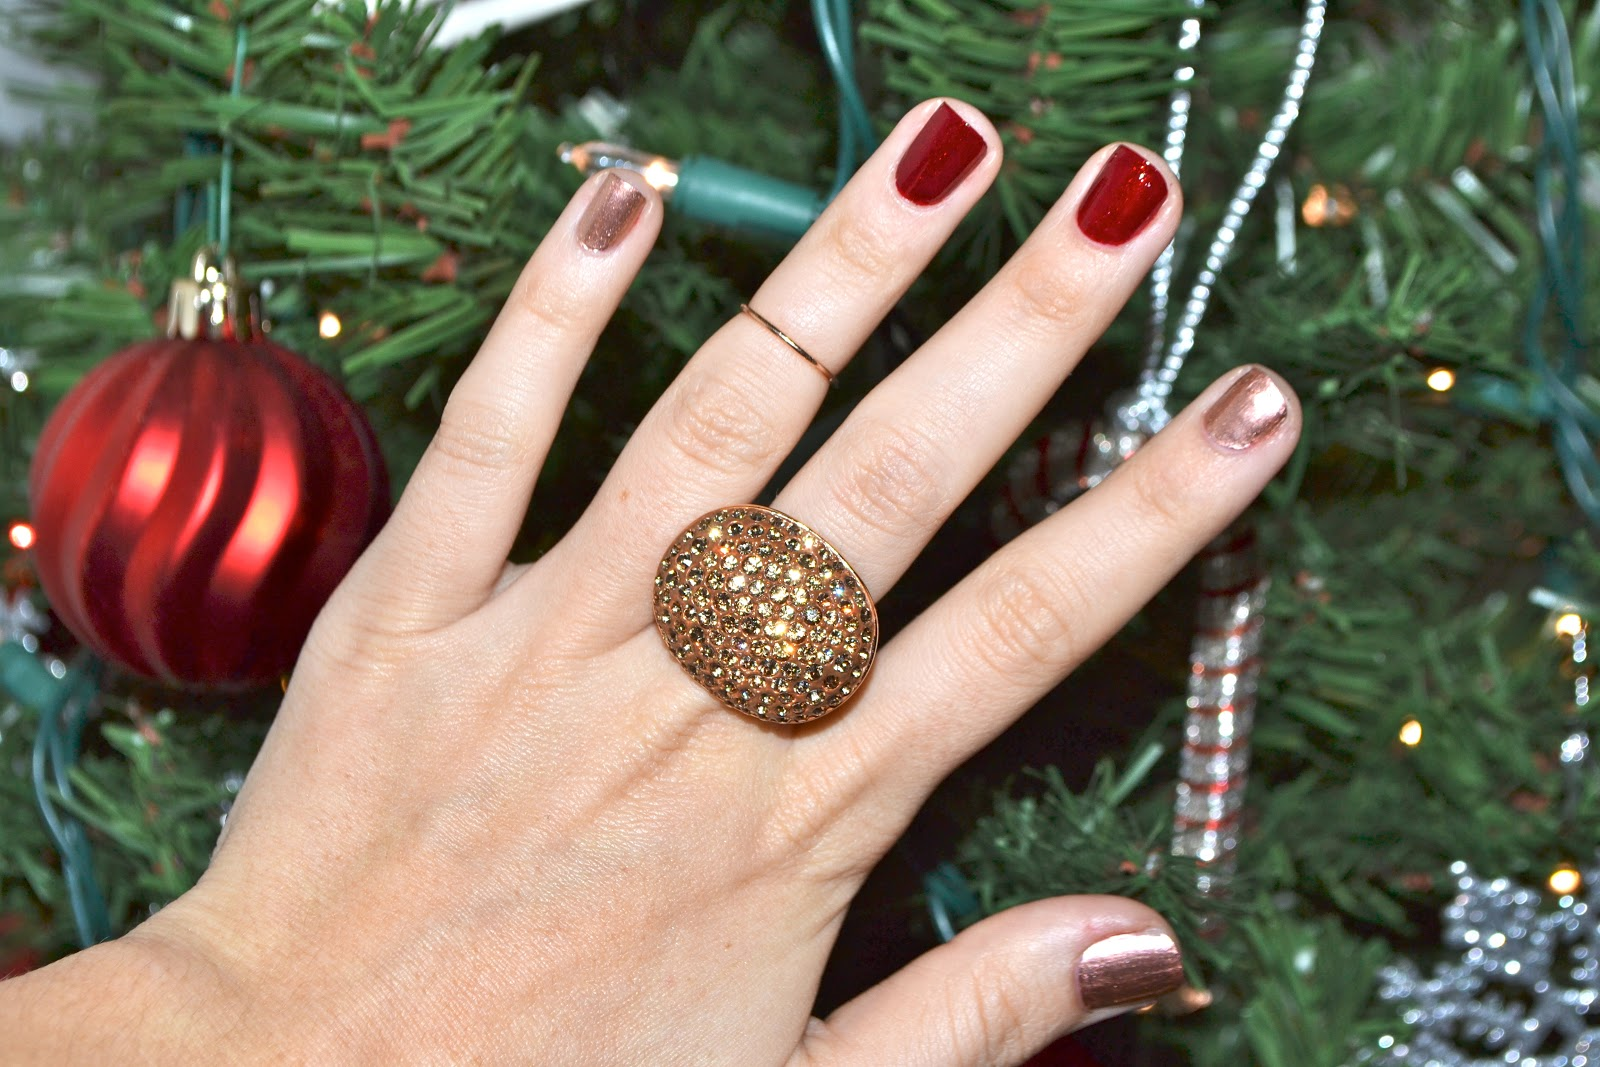 The christmas nail ornament -  Red Posts With My Holiday Red Nails The Picture Just Does Not Do The Justice With How Gorgeous The Red Glitter And The Rose Gold Shimmer Turned Out